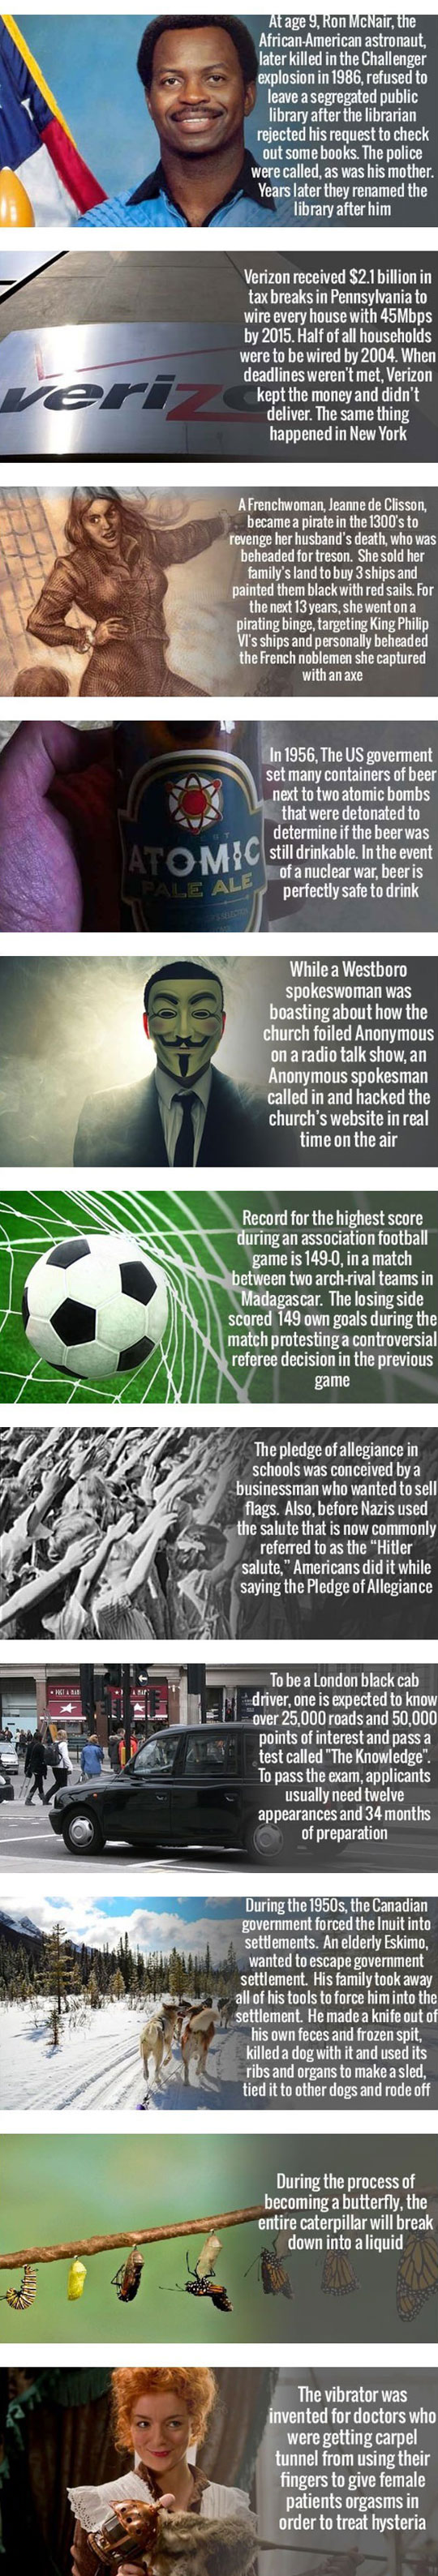 cool-history-facts-soccer-monster